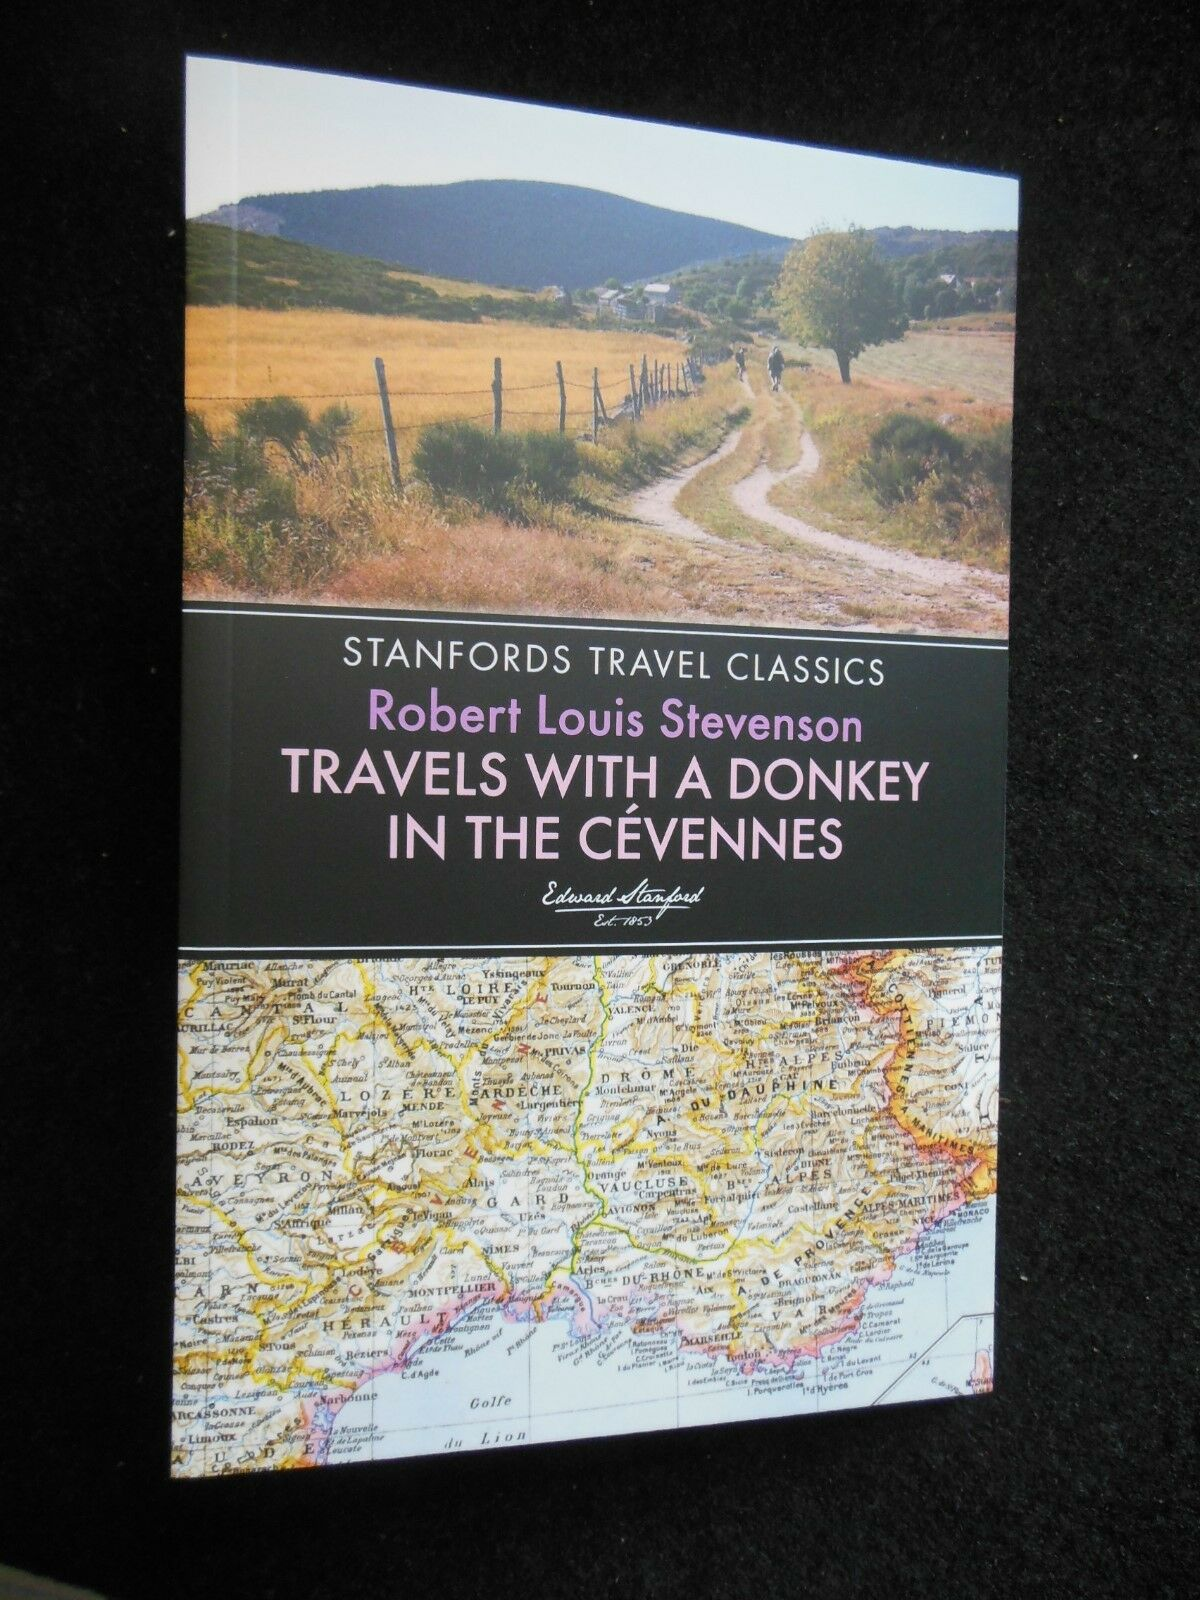 ,Robert Louis S Travels with a Donkey in the Cevennes Stanford Travel Classics